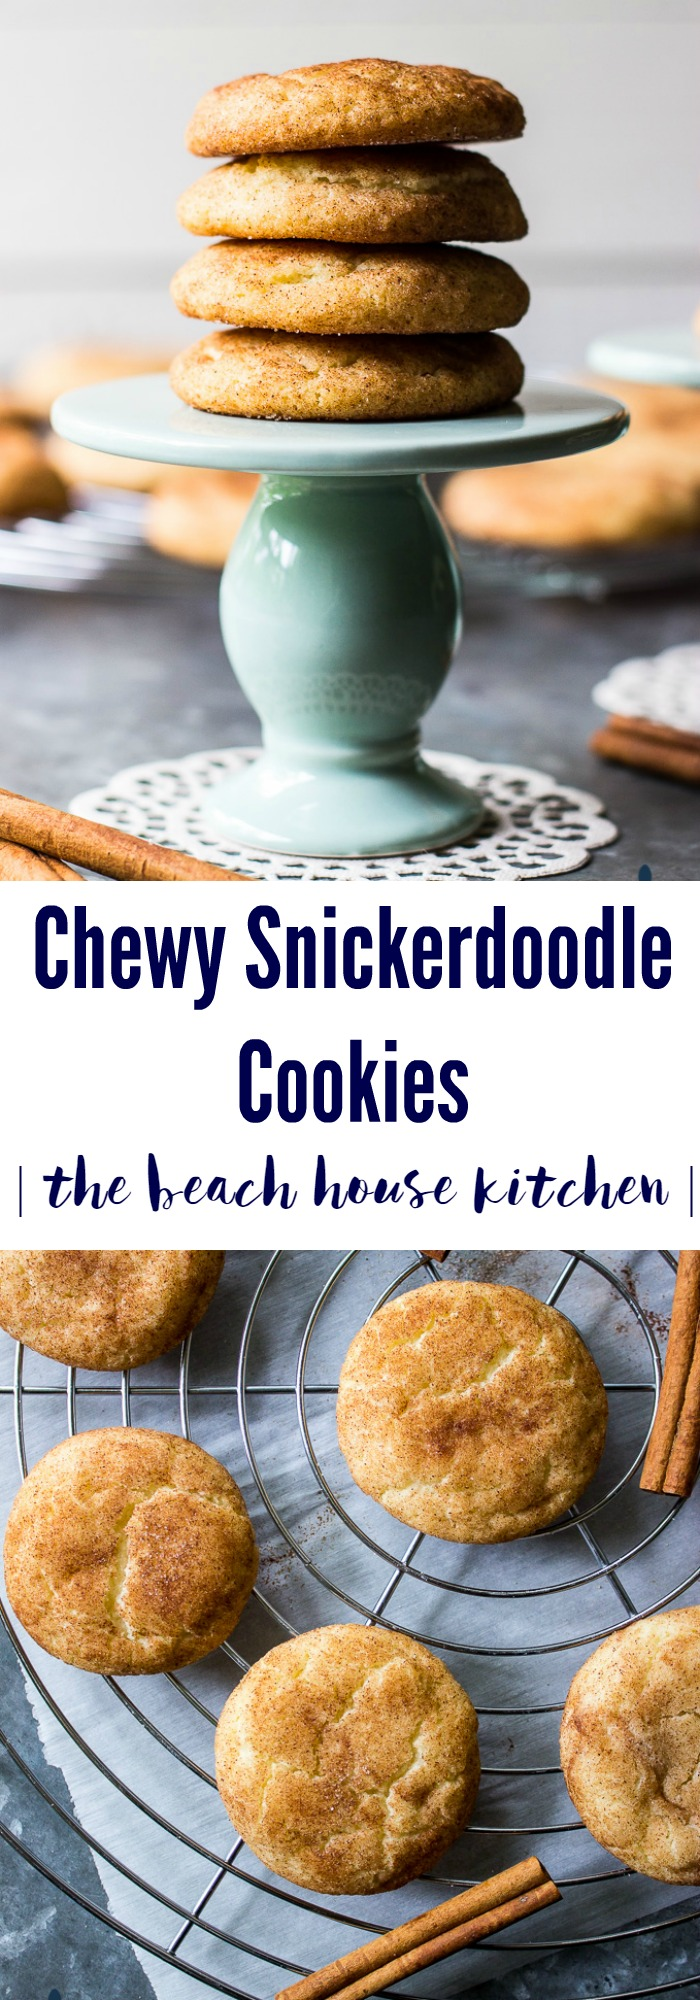 Chewy Snickerdoodle Cookies